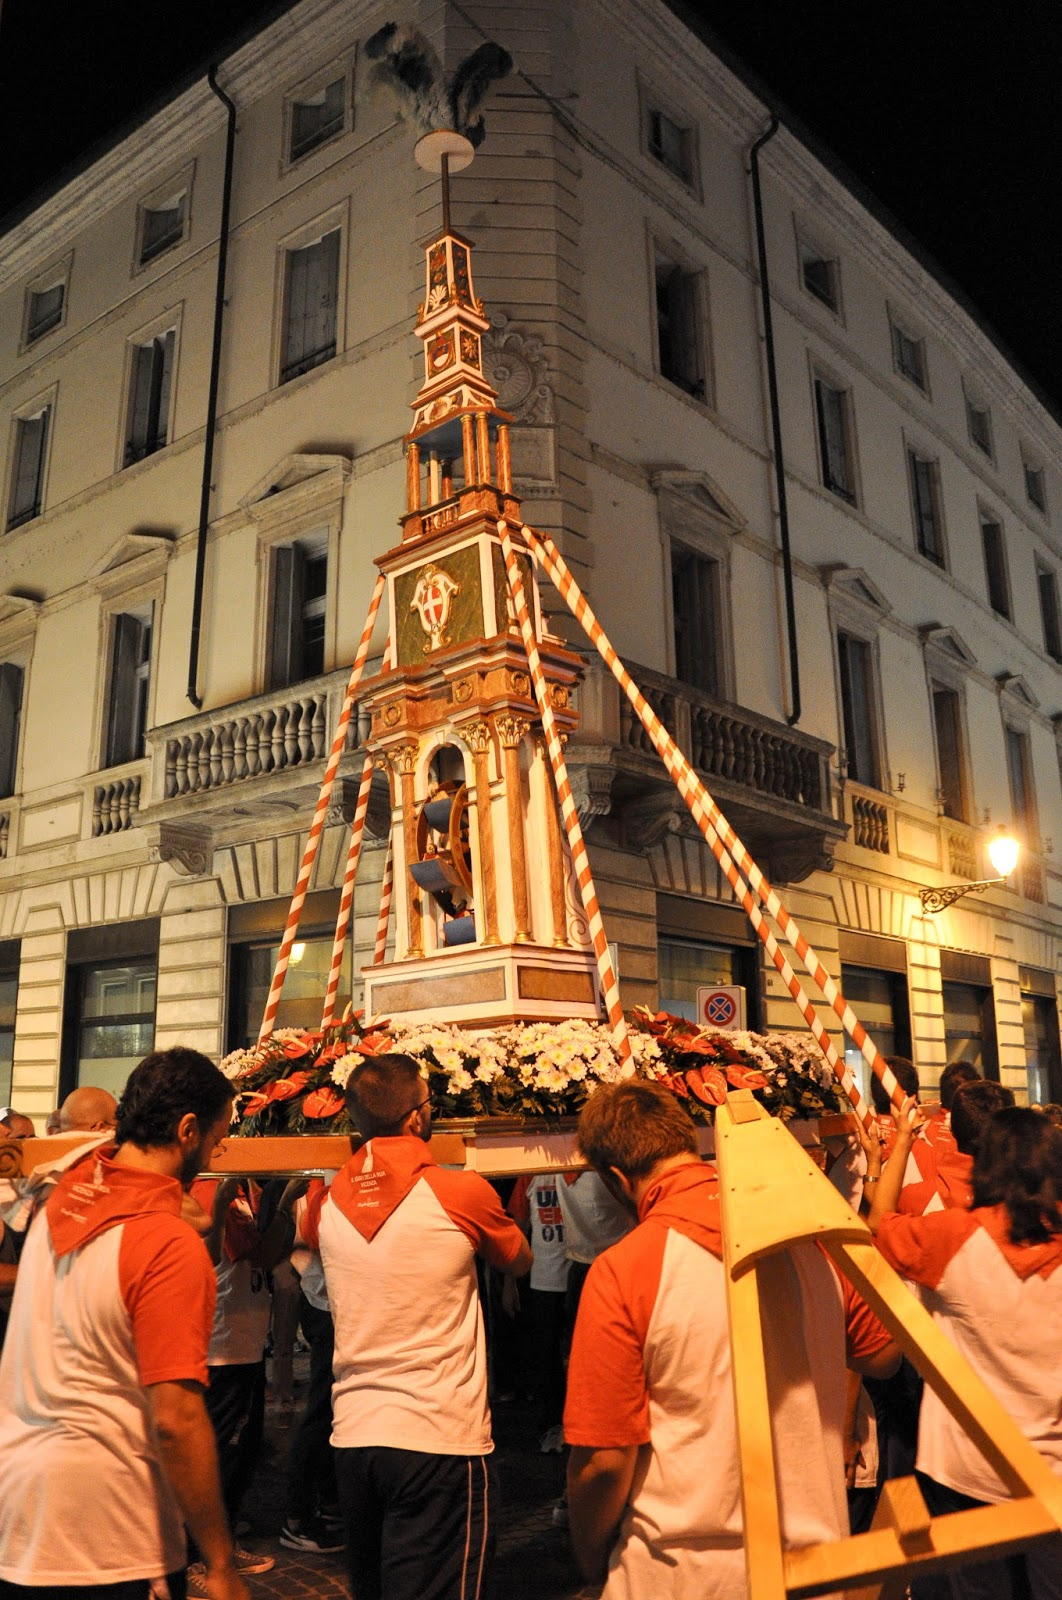 The parade with Giro della Rua going up Corso Palladio, Vicenza, Italy